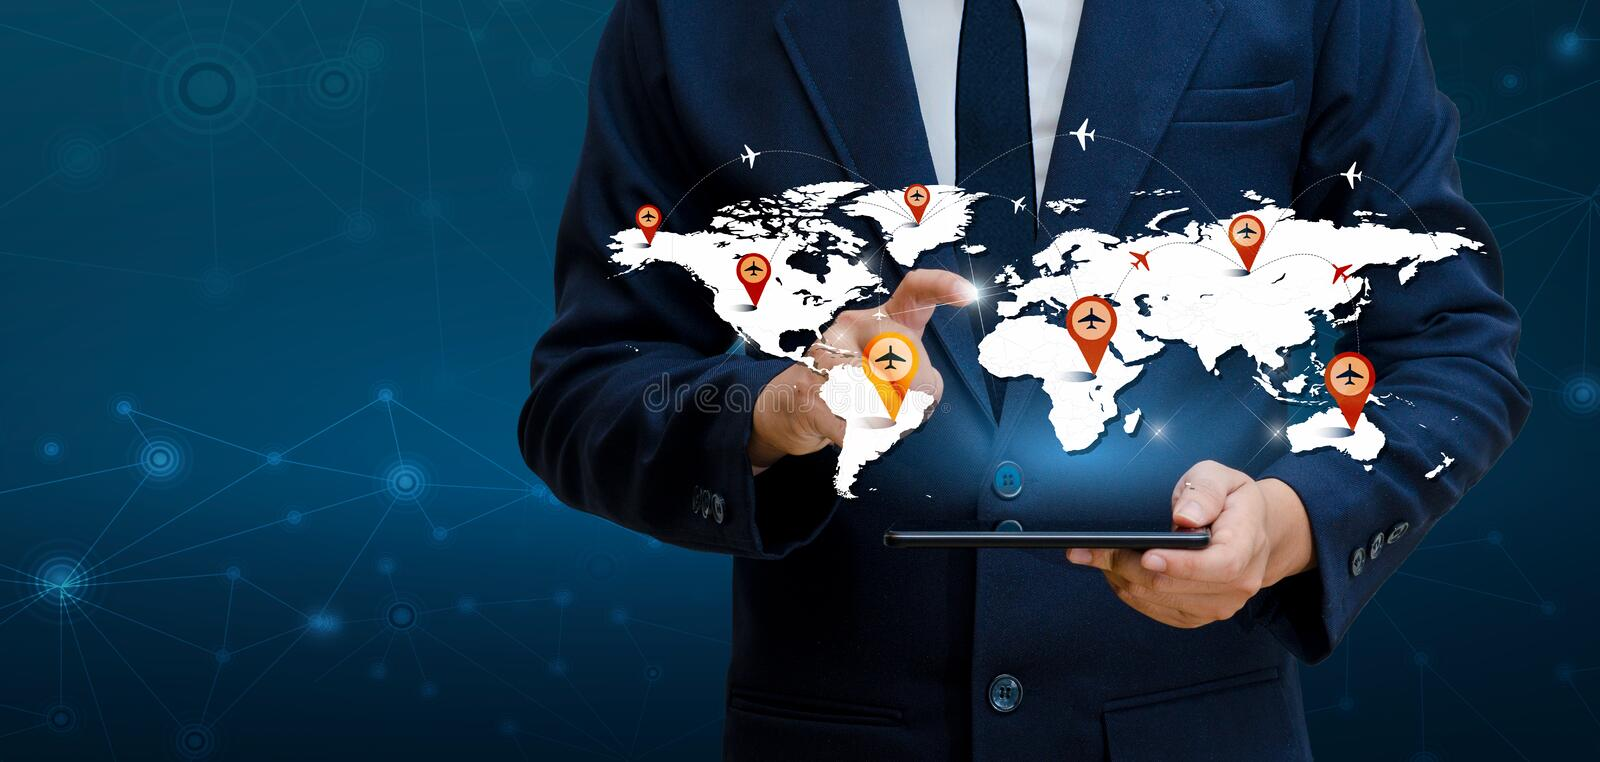 Smart Phones and Globe Connections Uncommon communication world Internet Businesspeople press the phone to communicate in the Inte. Rnet. Communications royalty free stock photo